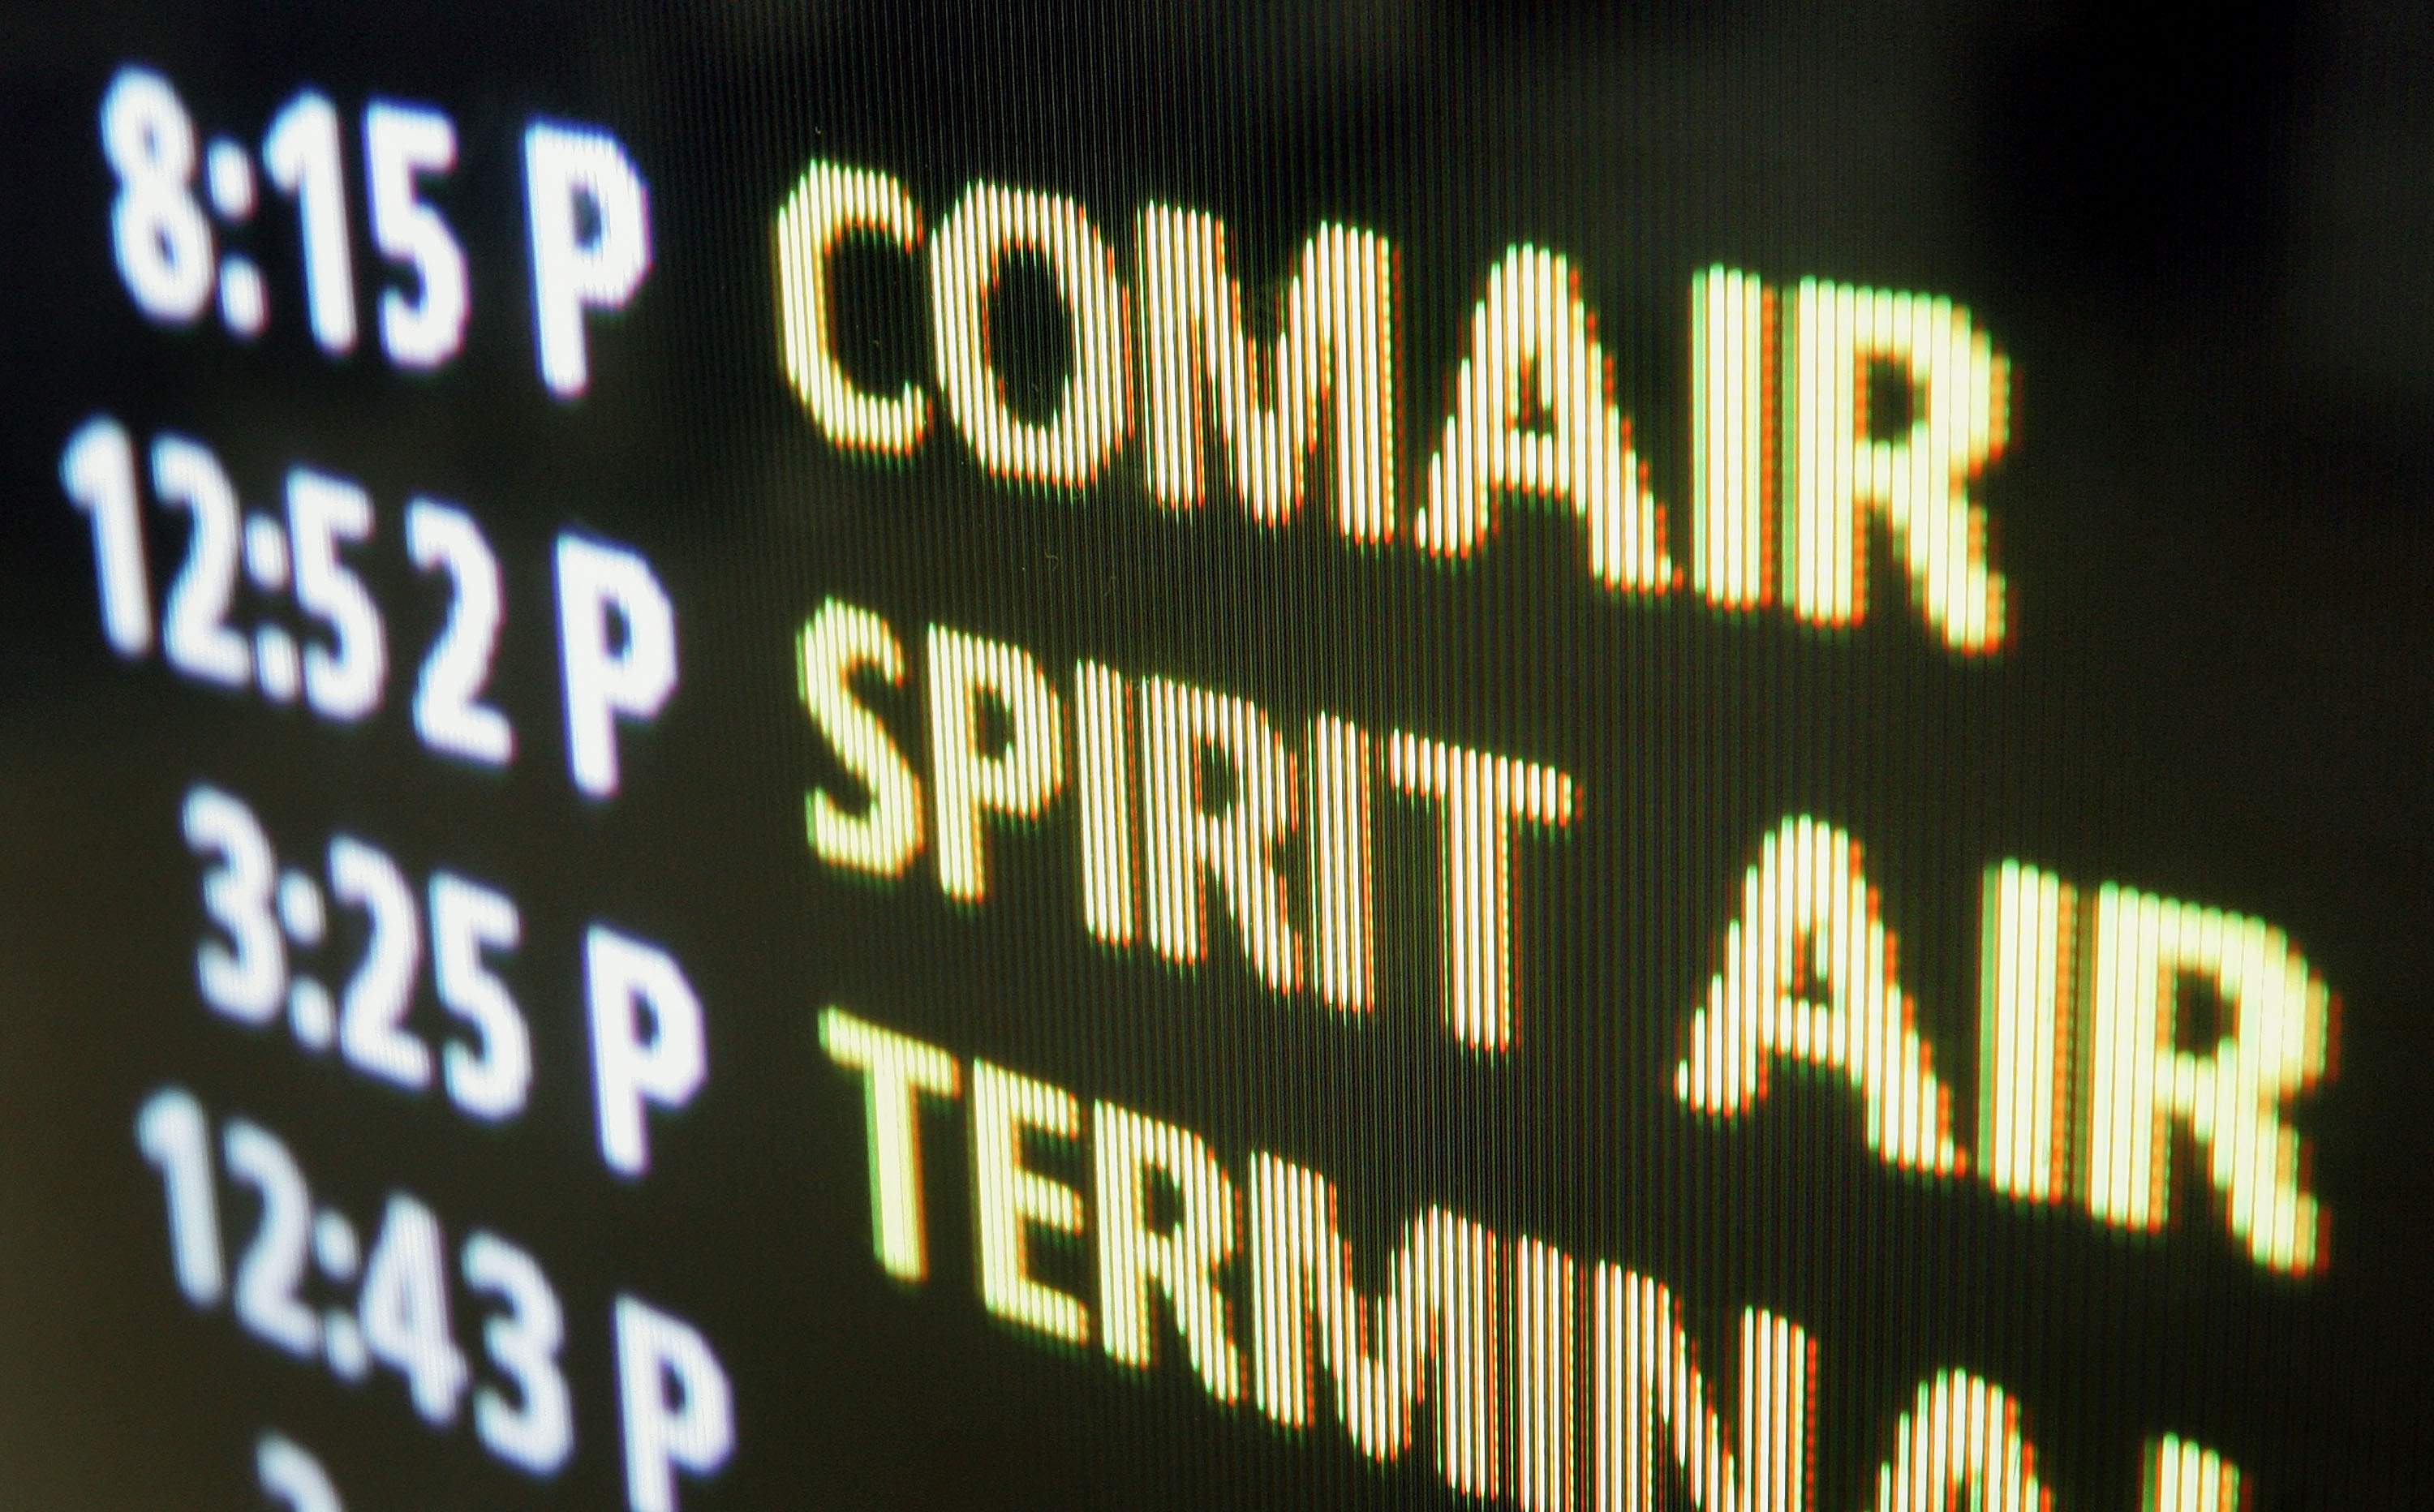 Comair is displayed on the Arrival/Departure board at O'Hare International Airport in Chicago.